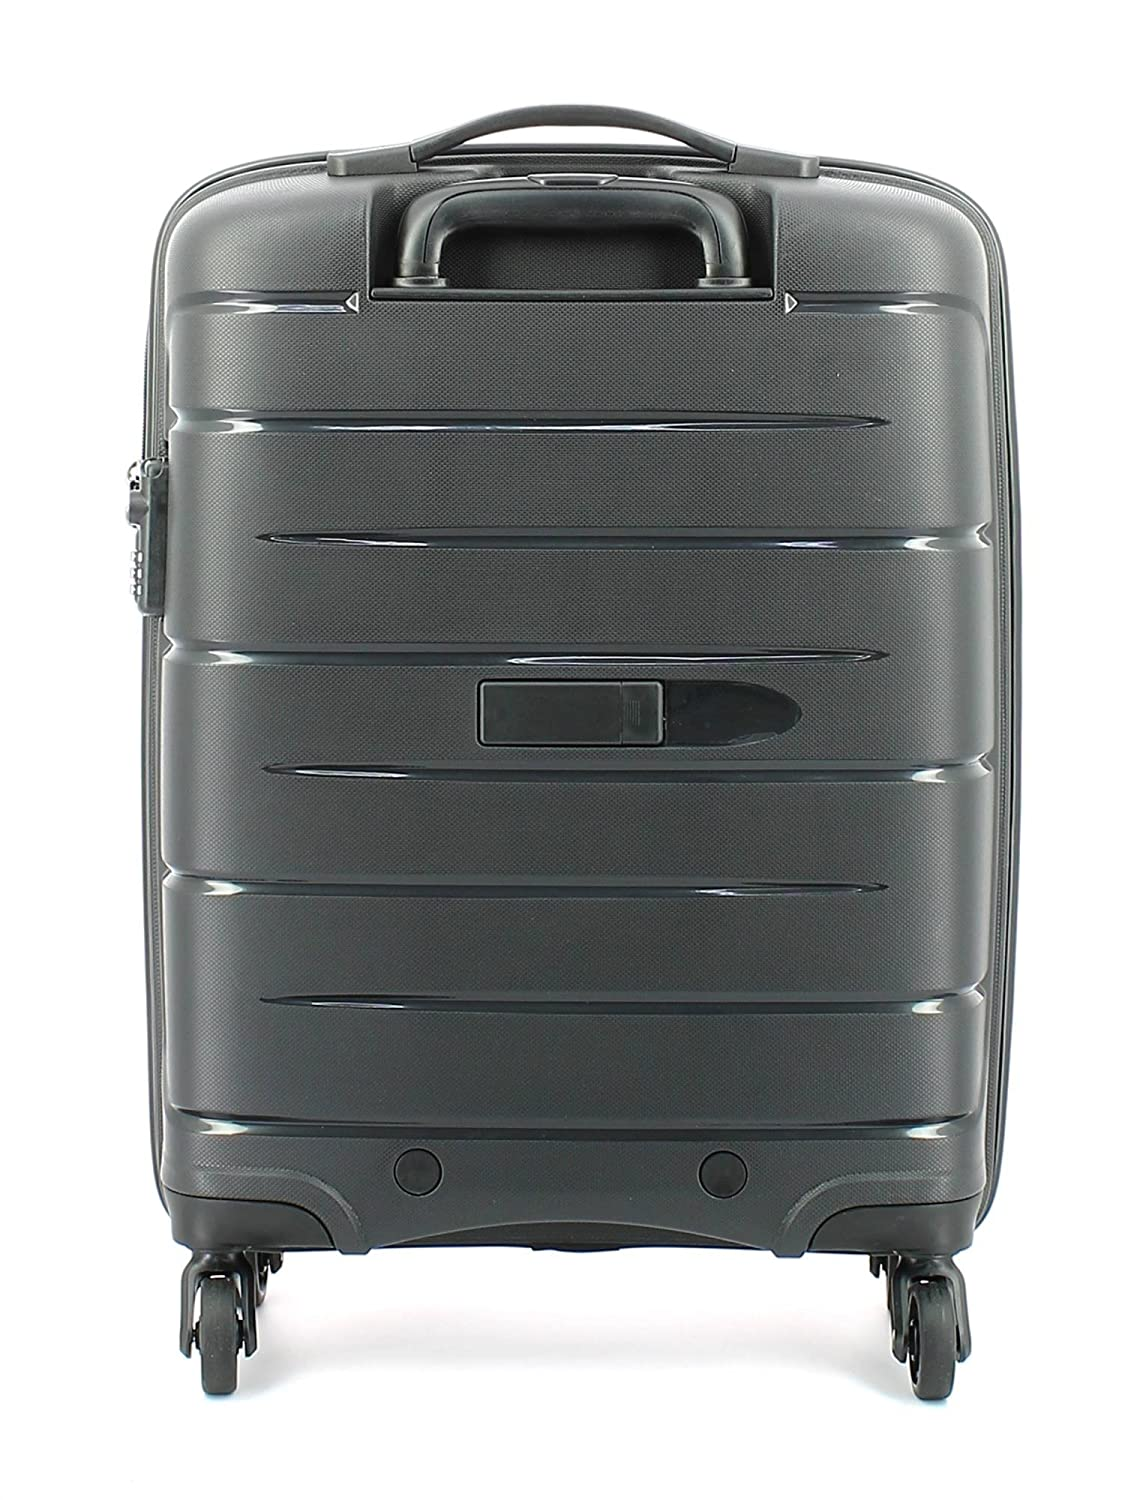 Luggage With Drawers Modo By Roncato Suitcase Cabin Trolley 4 Wheels Starlight 55 Cm